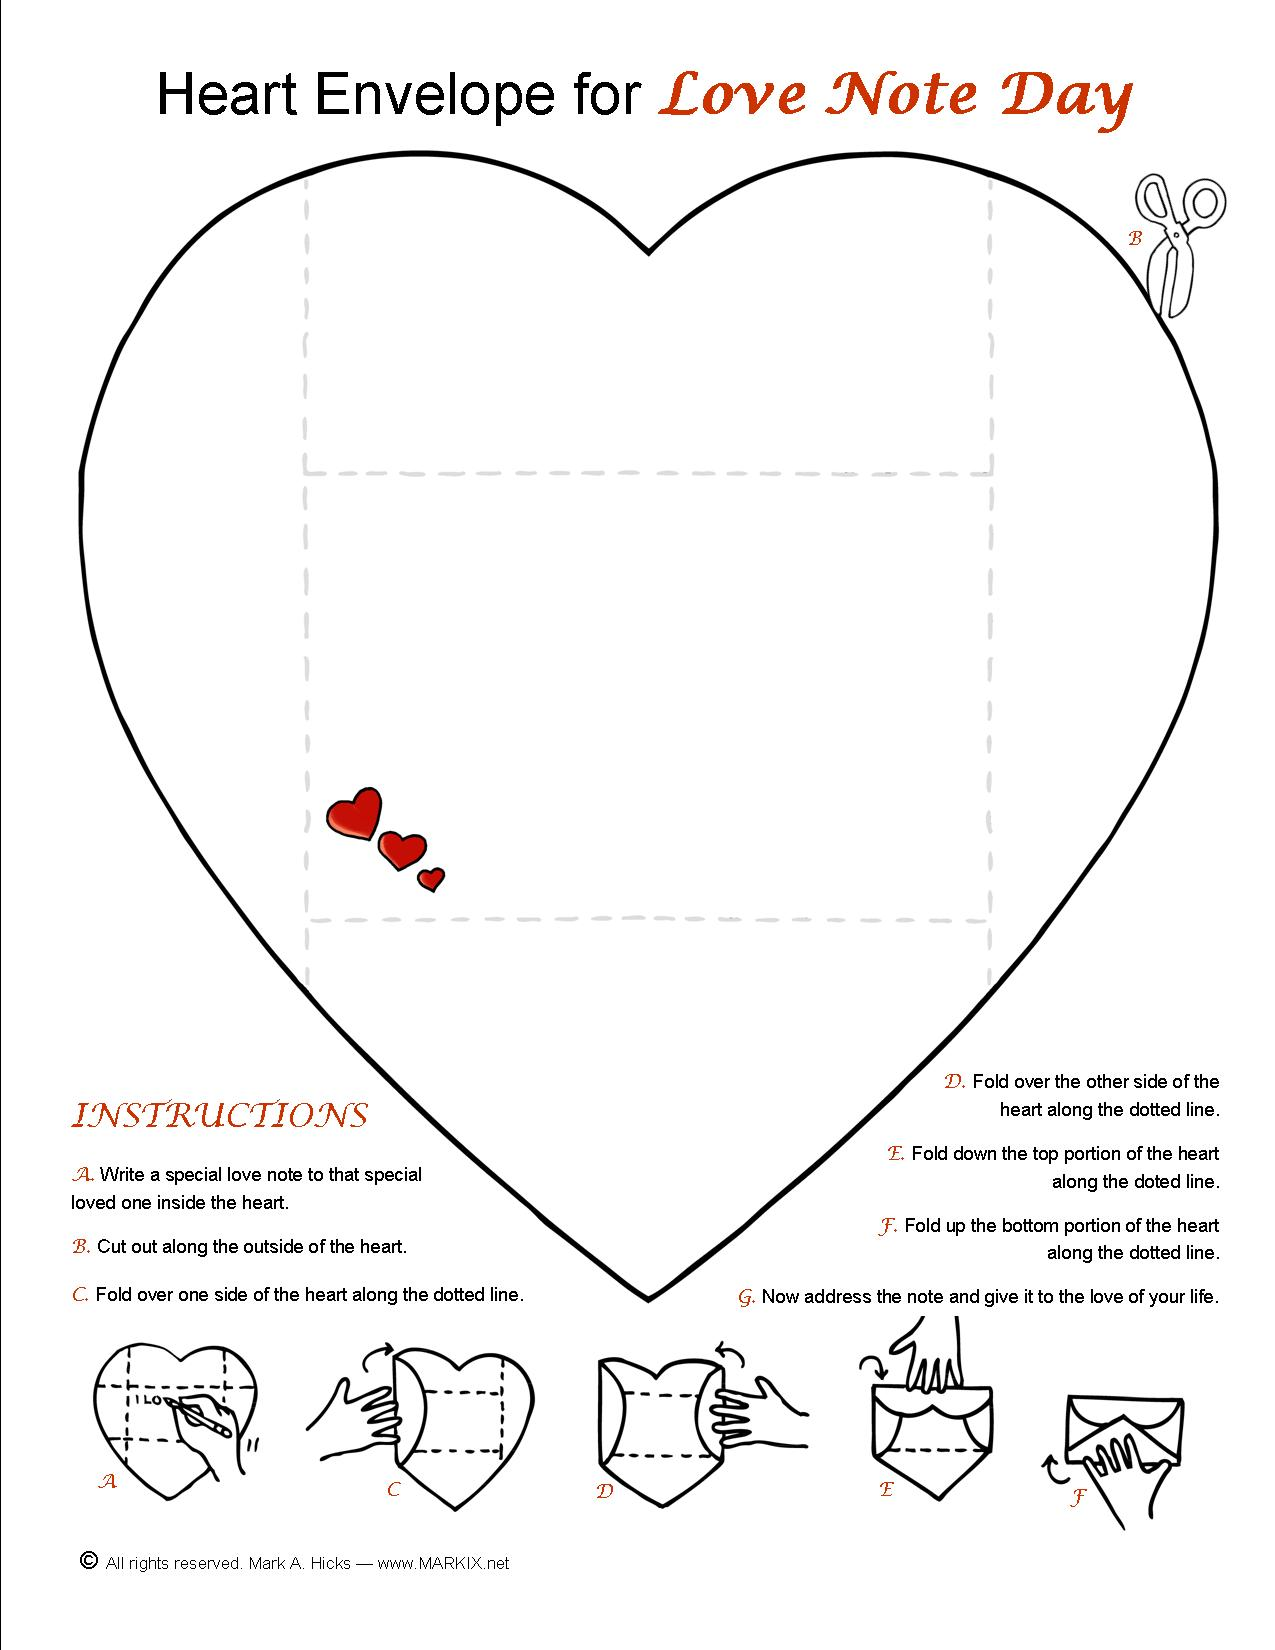 Heart Note And Envelope For Love Note Day Or Anytime